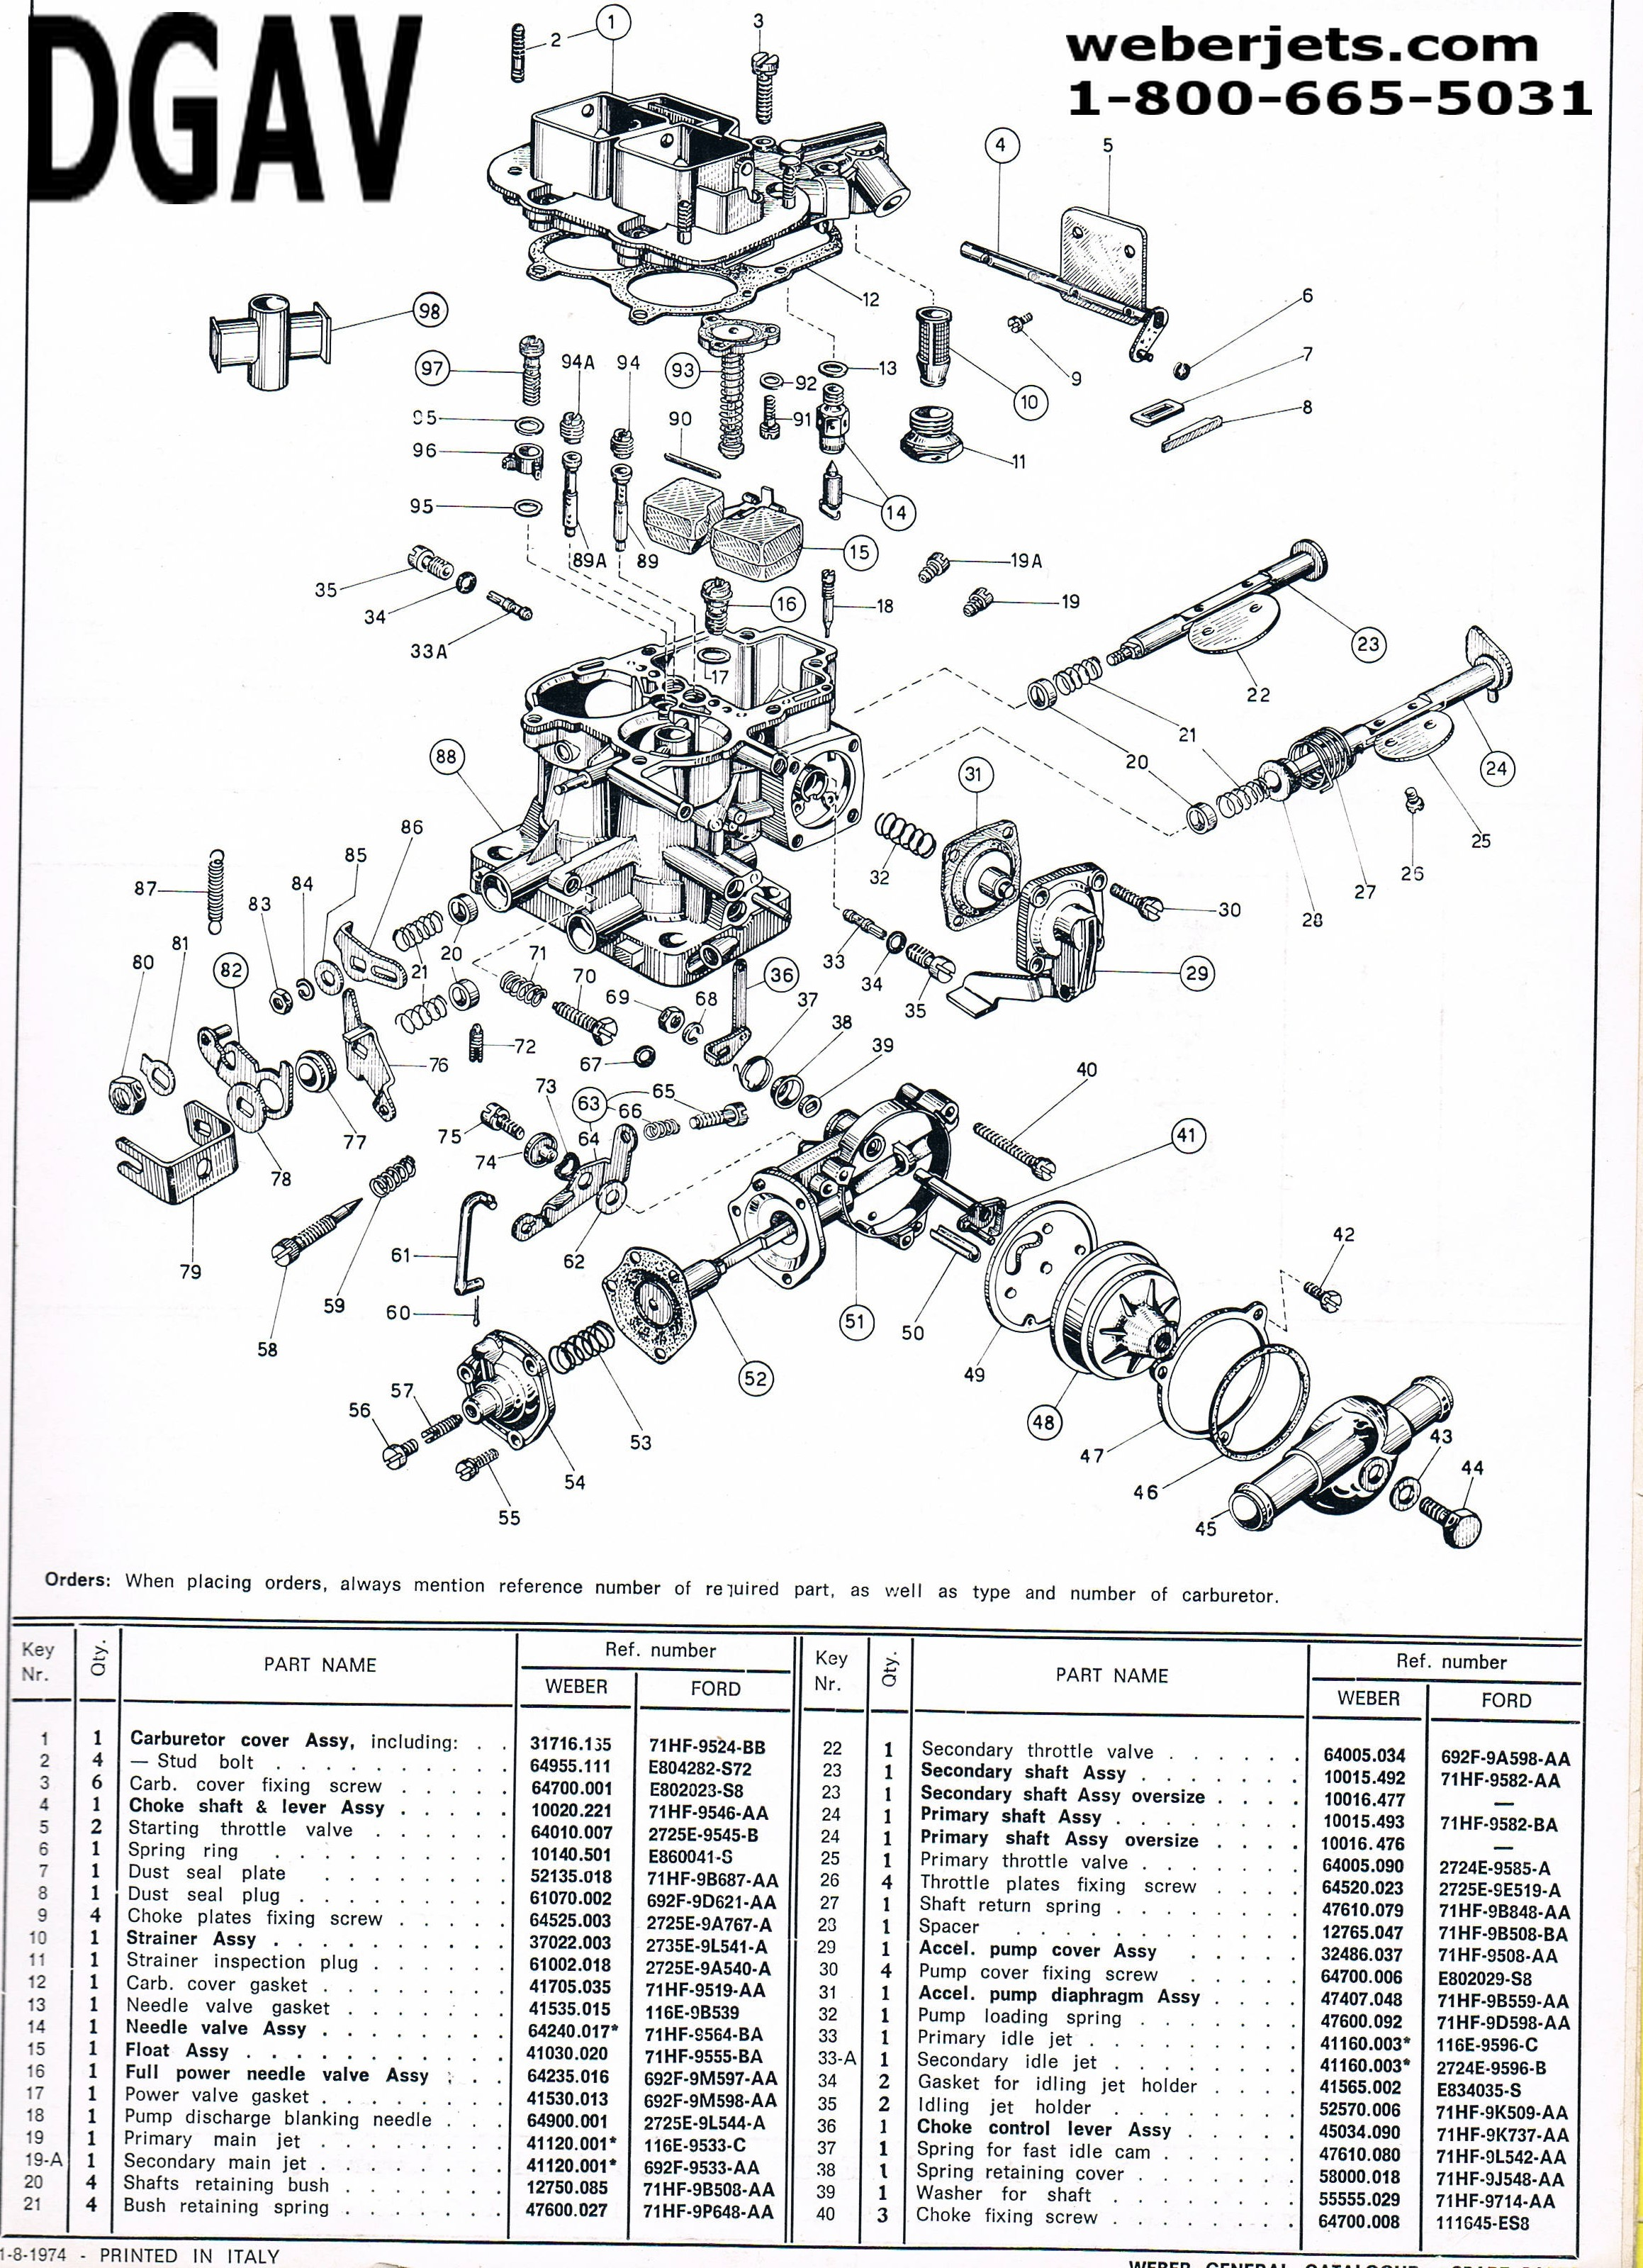 Weber Carburetor Exploded Views